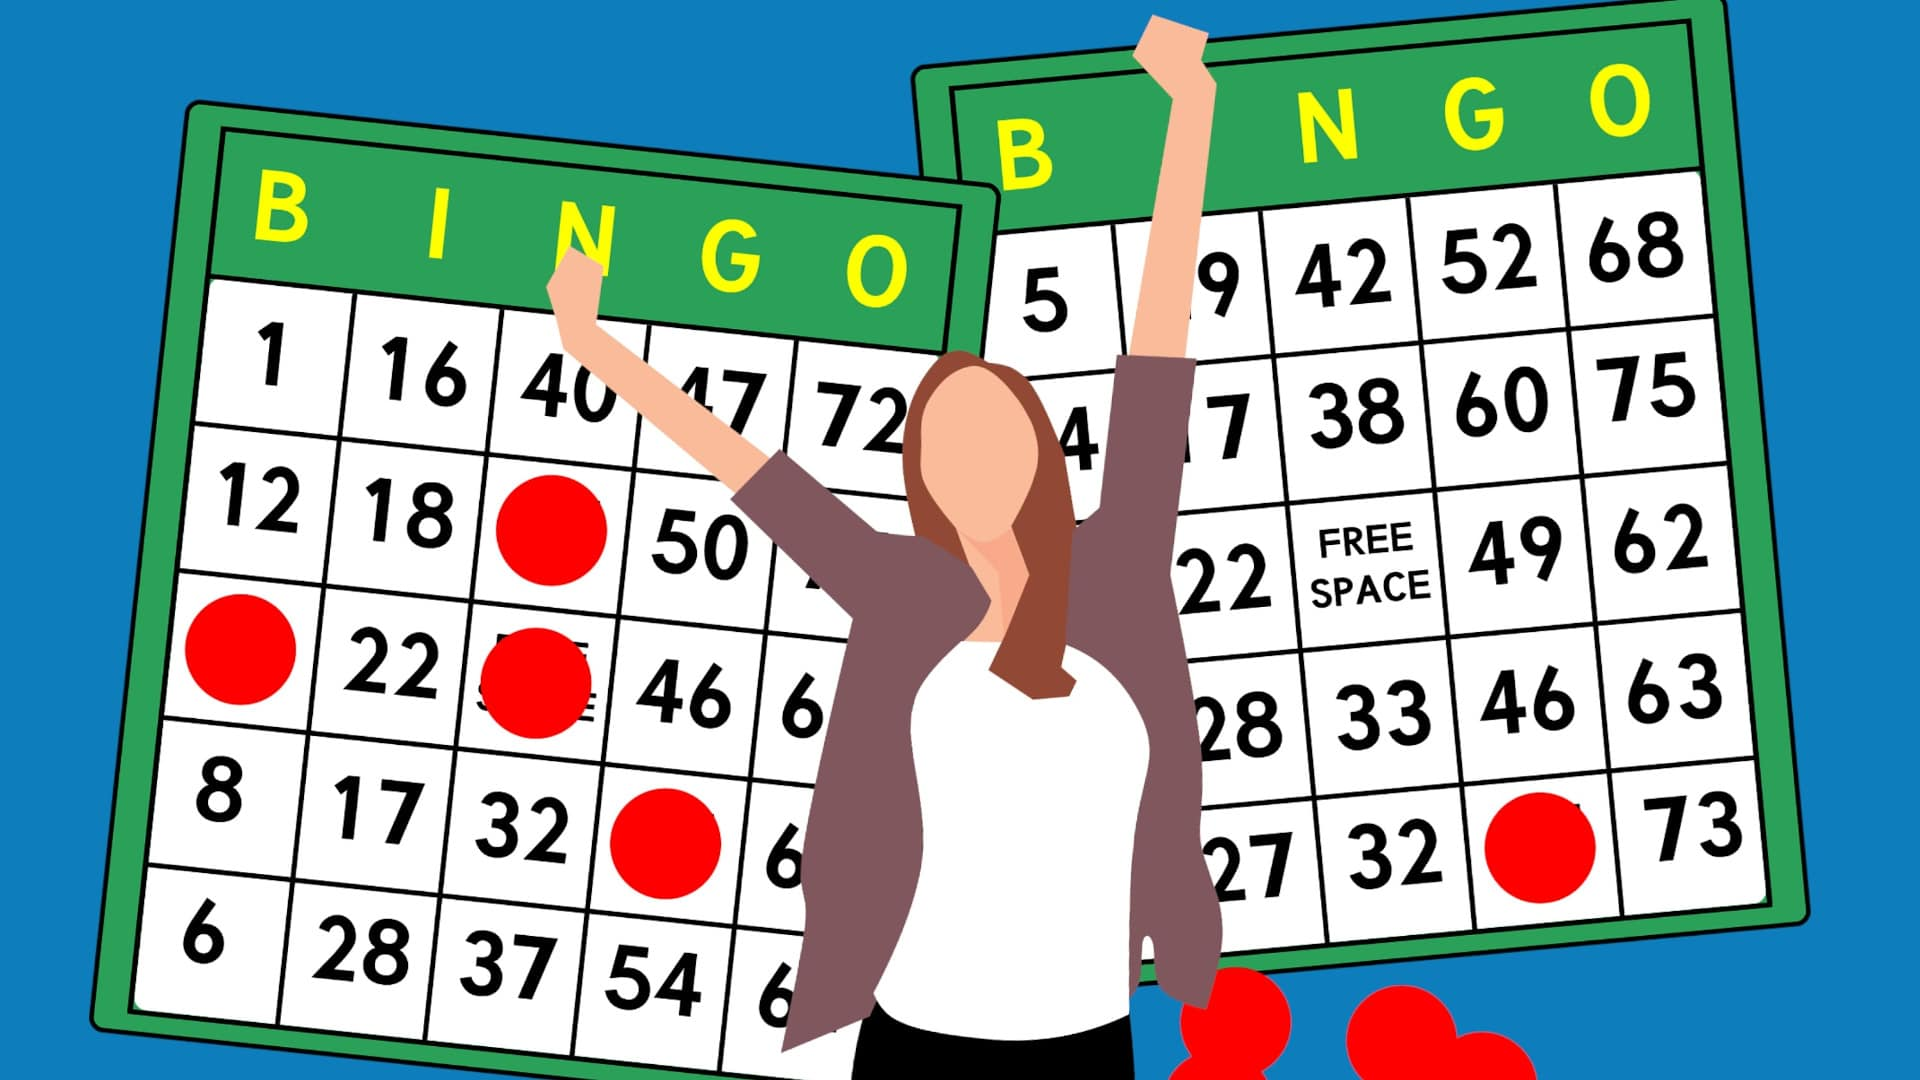 BINGO Game Rules and How to Play Guide